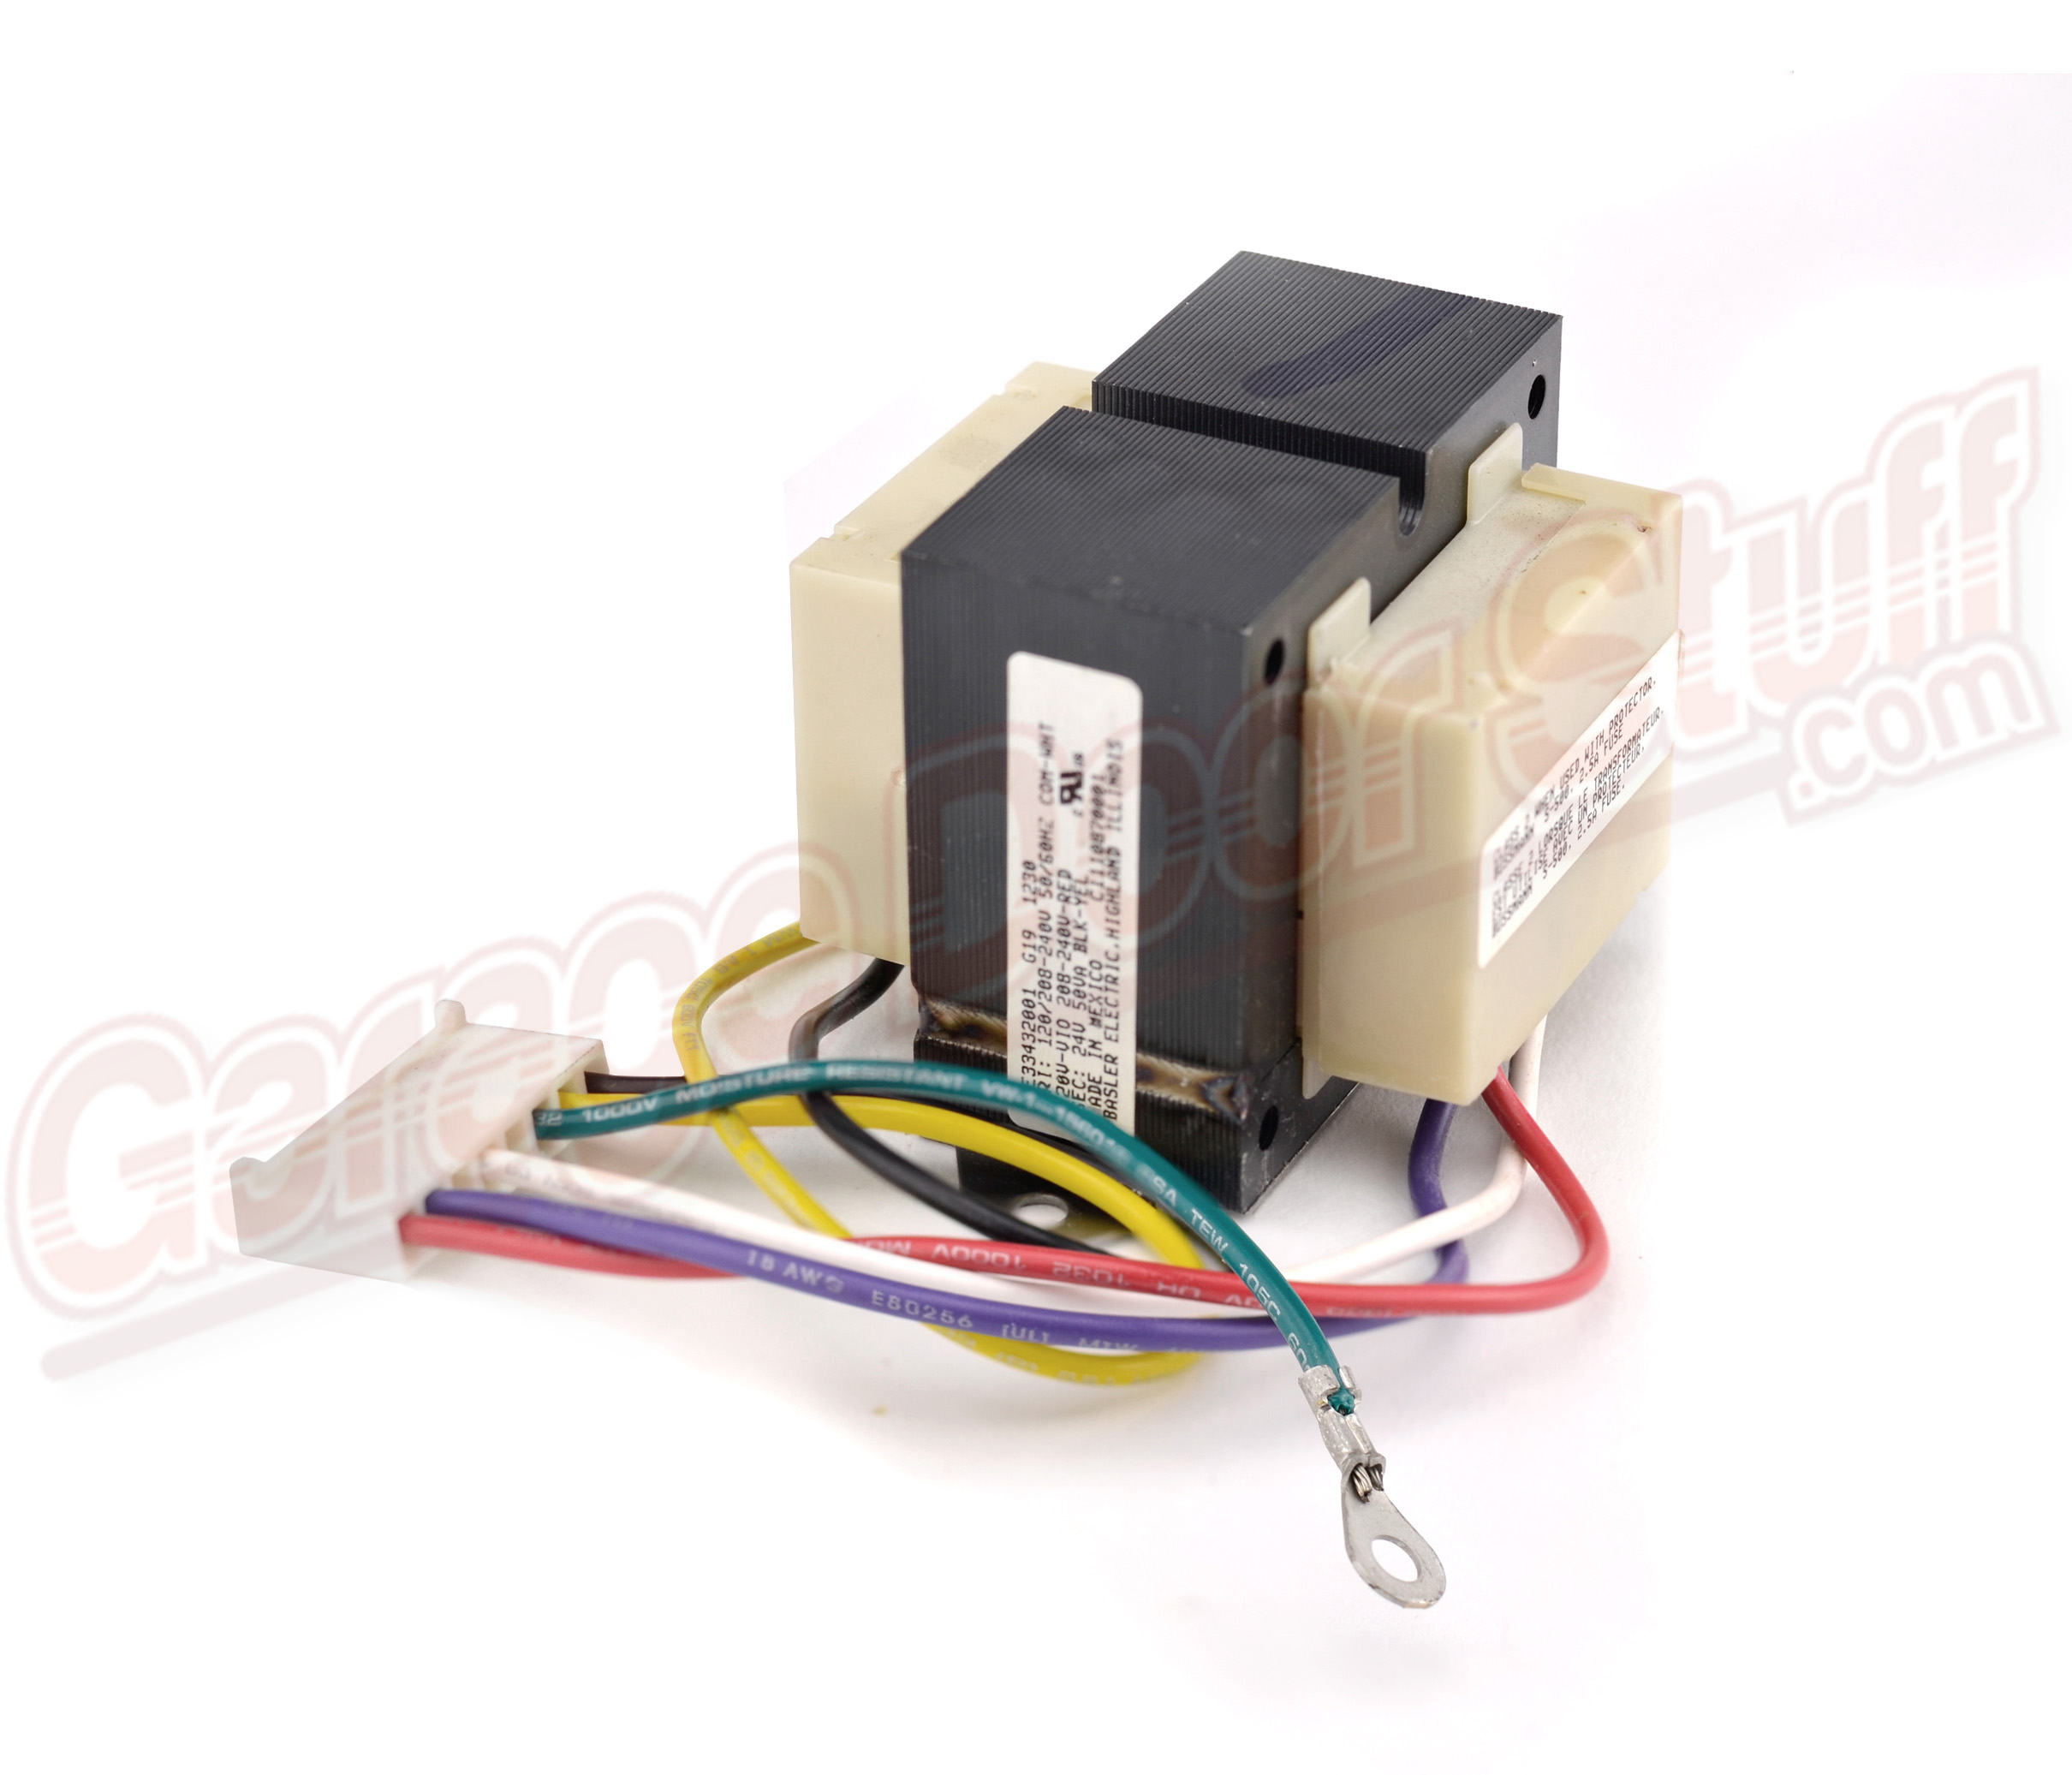 Commercial Garage Door Opener Transformer Garage Door Stuff